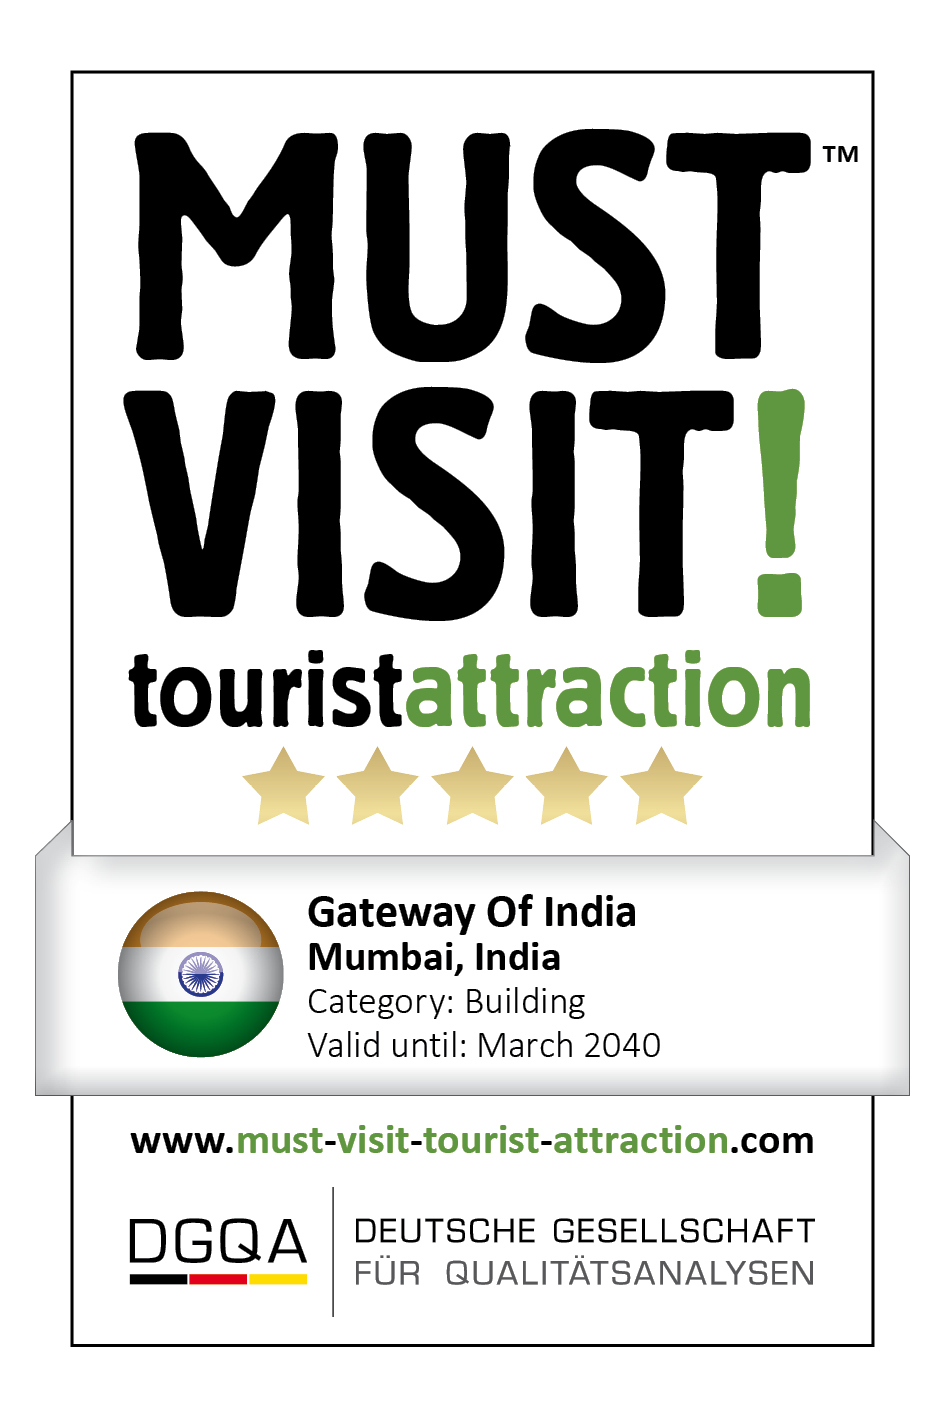 MUST VISIT! tourist attraction (dgqa) gateway of india